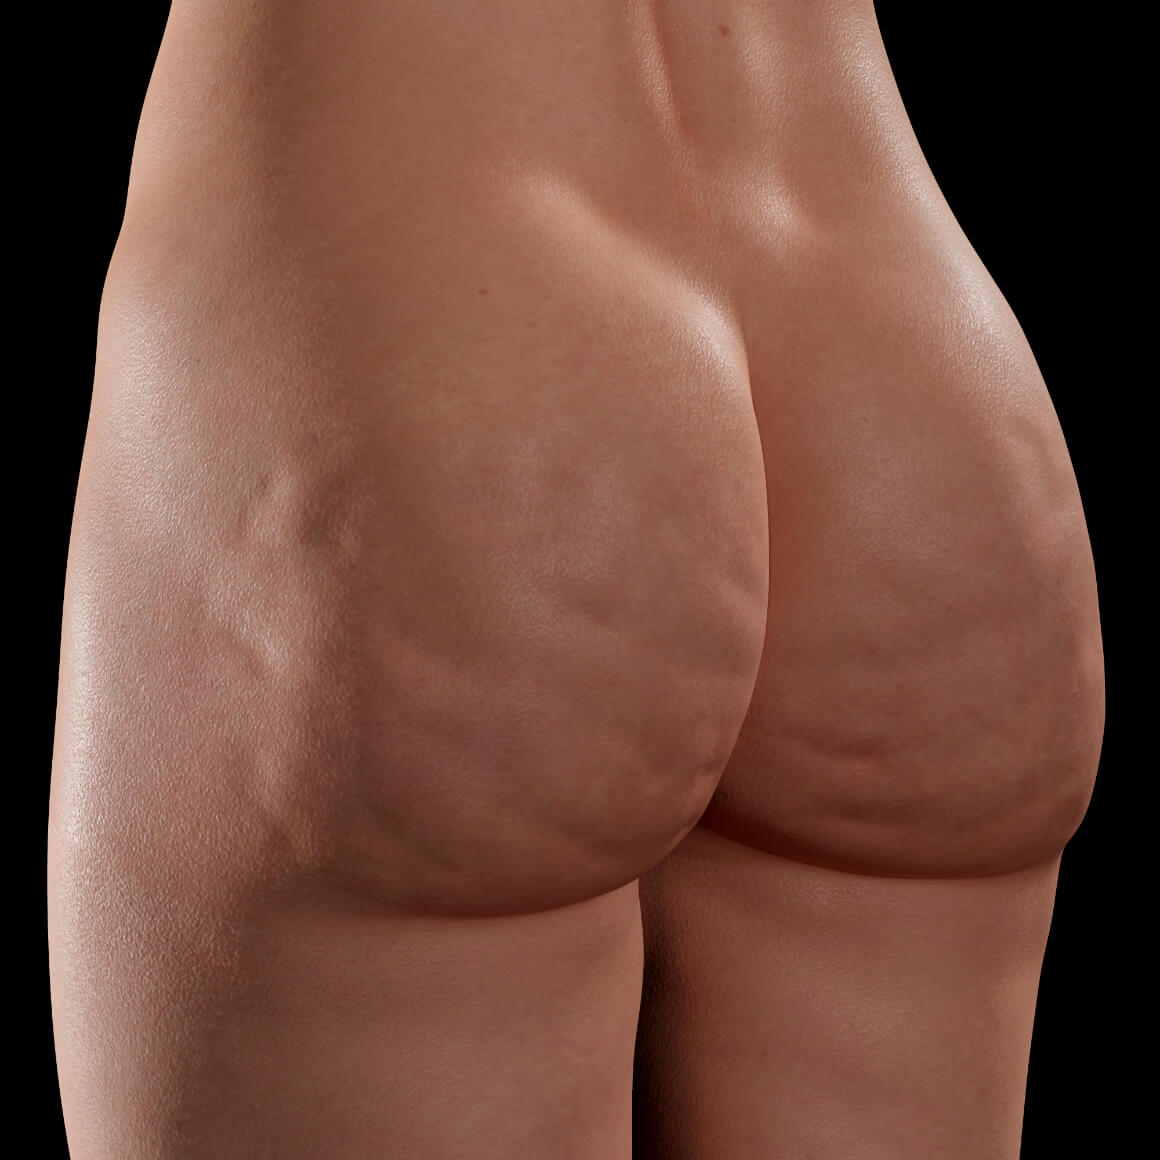 A female patient at Clinique Chloé positioned at an angle showing cellulite in the buttock area